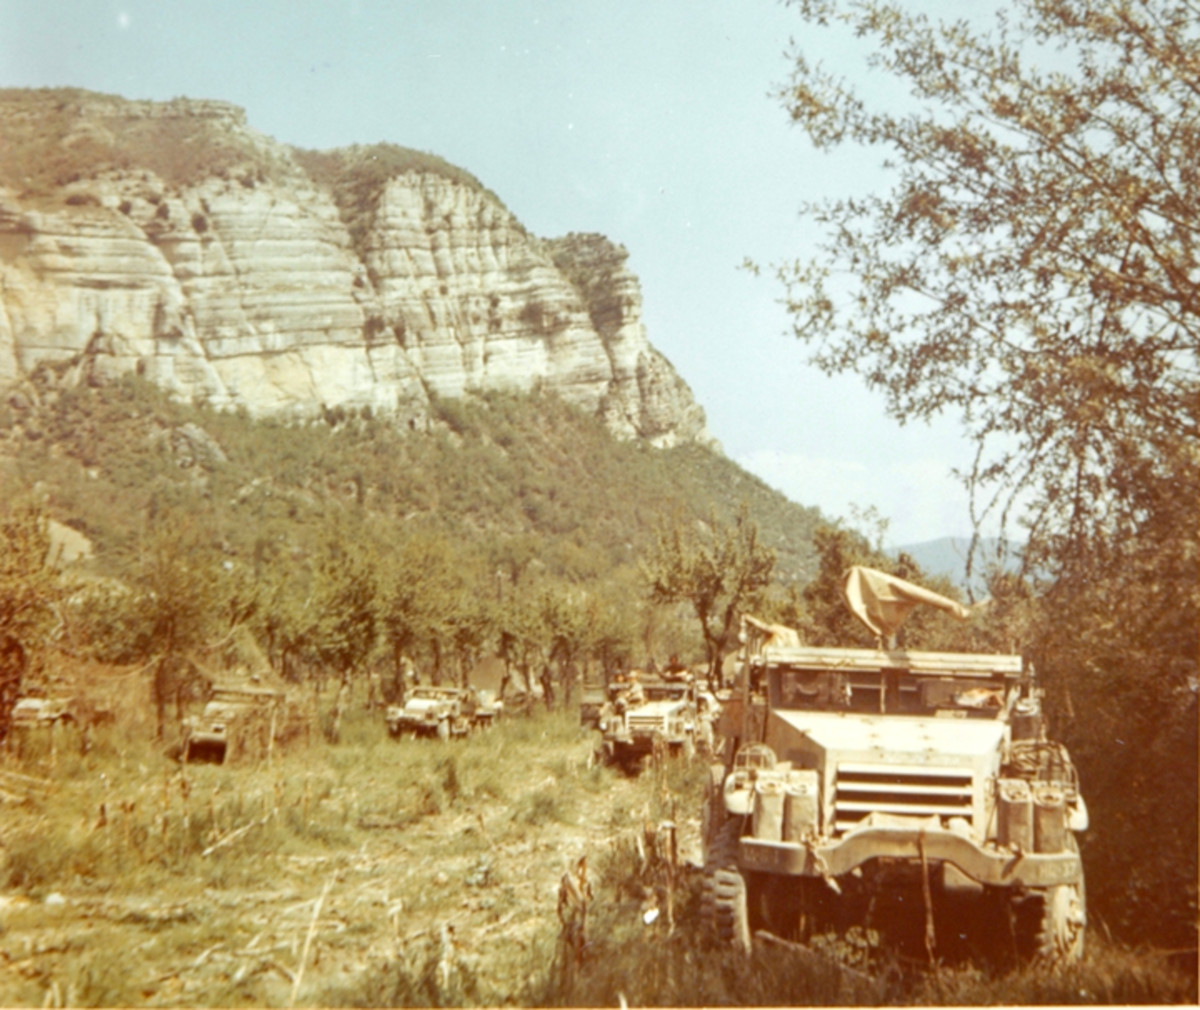 At least six First Armored Division half-tracks are visible in this photo taken in Northern Italy.